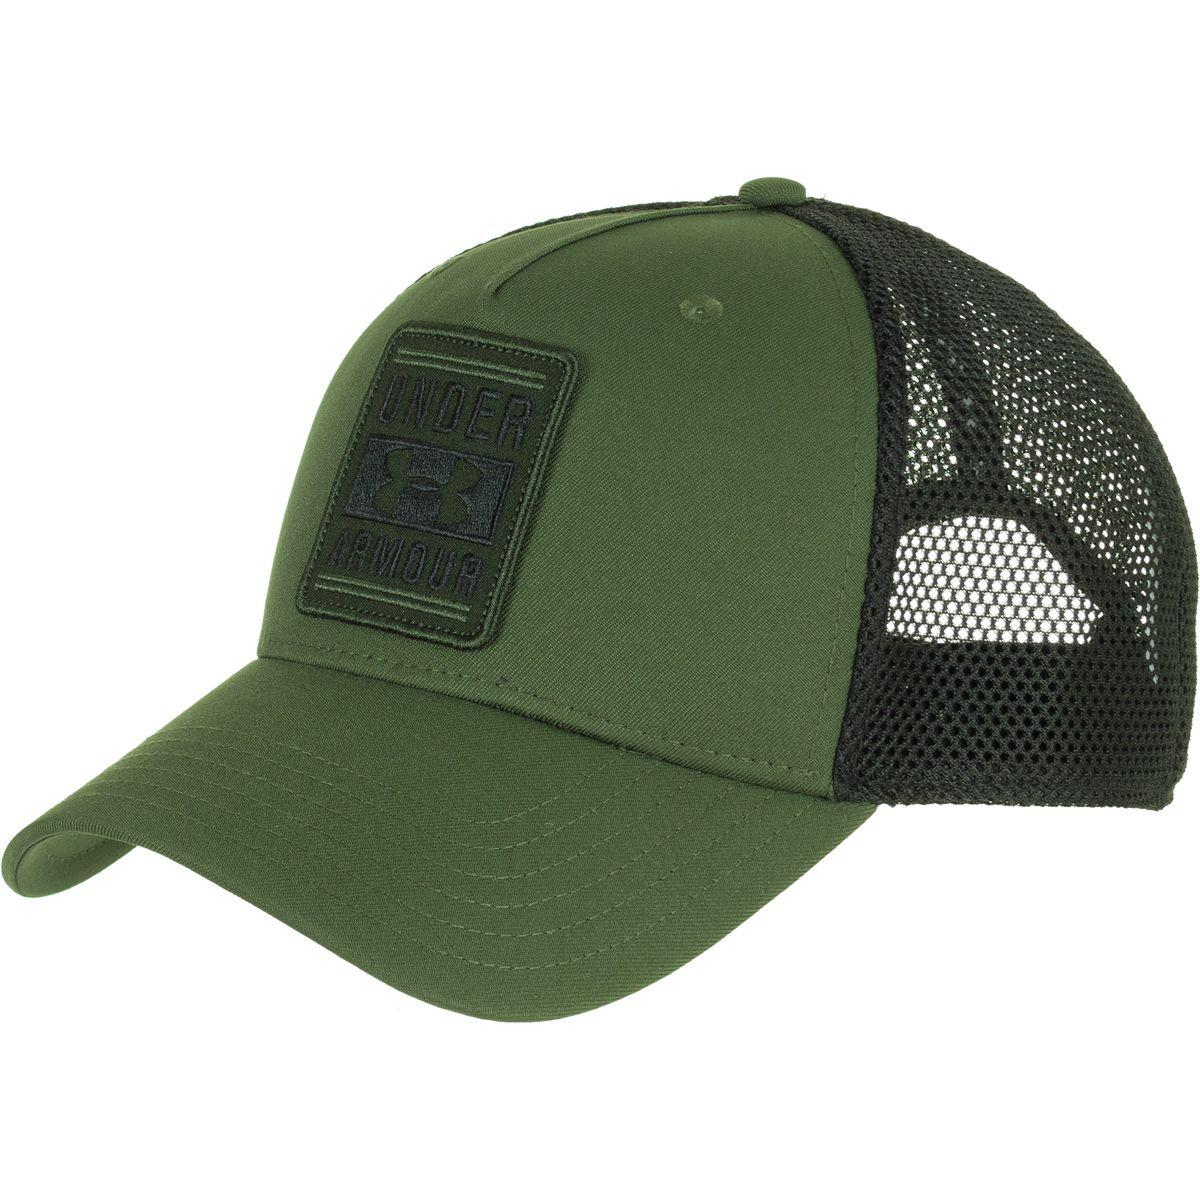 3450a18ca323a Under Armour Outdoor Performance Trucker Cap in Green for Men - Lyst